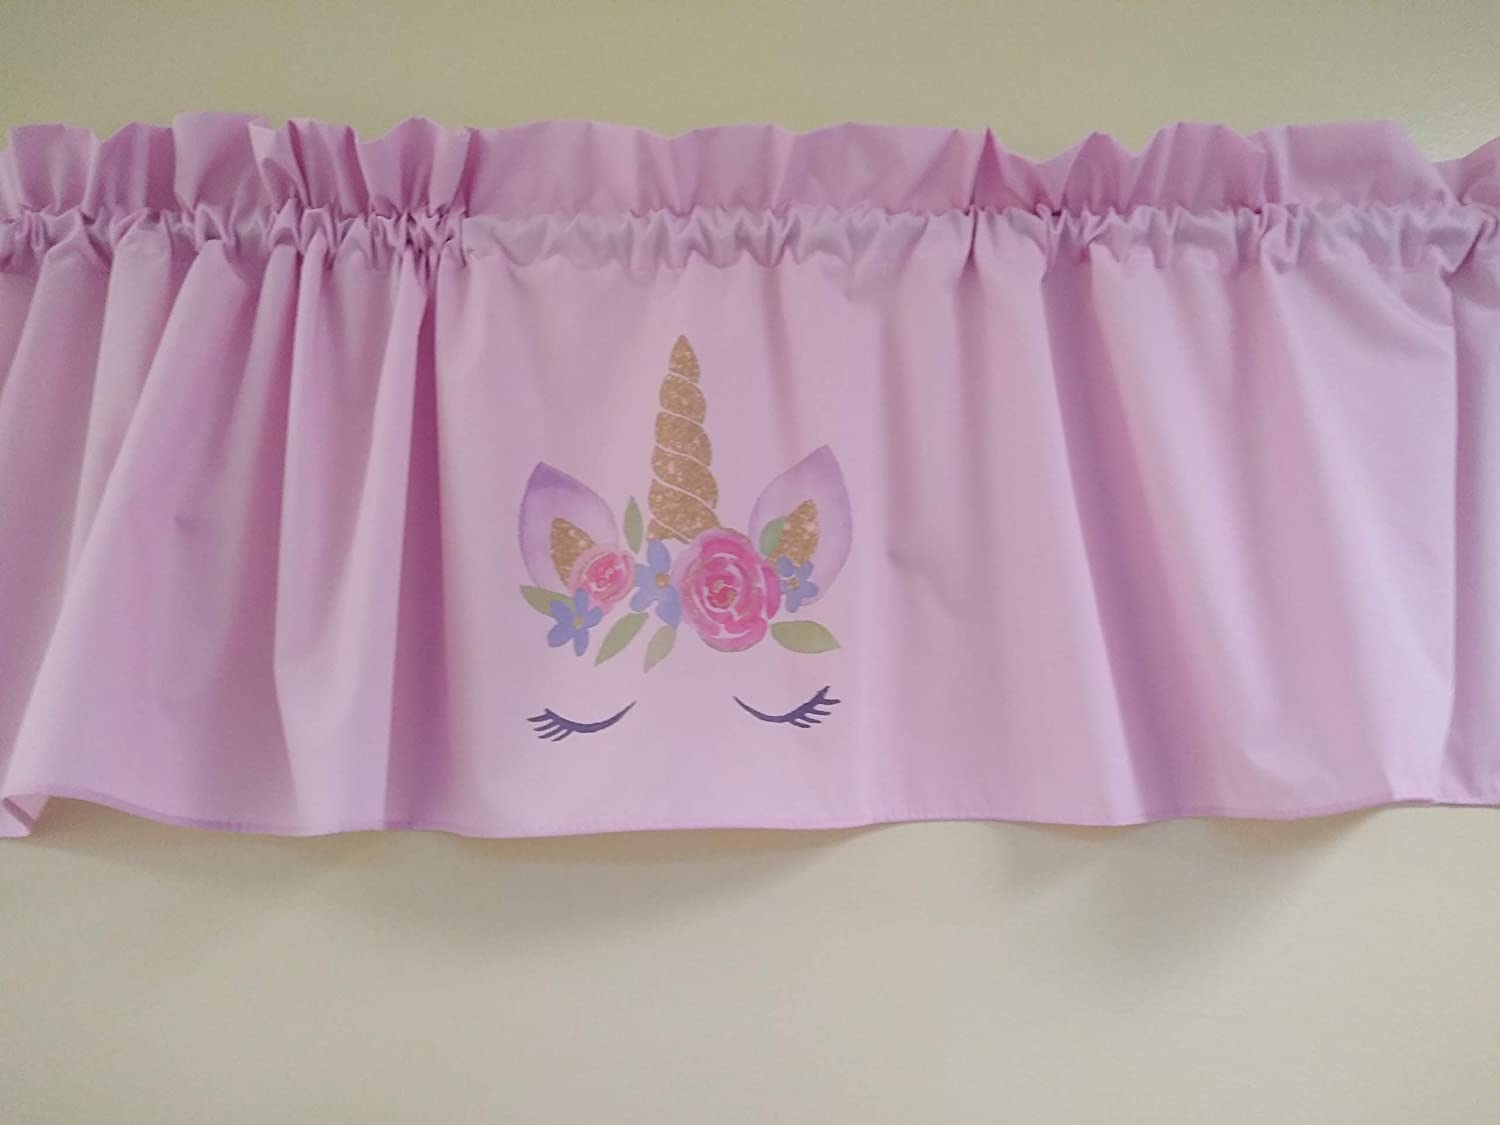 Girls room window treatment decor Pink Unicorns valance curtain Solid White valance sublimation on fabric 58 inches wide Fabric